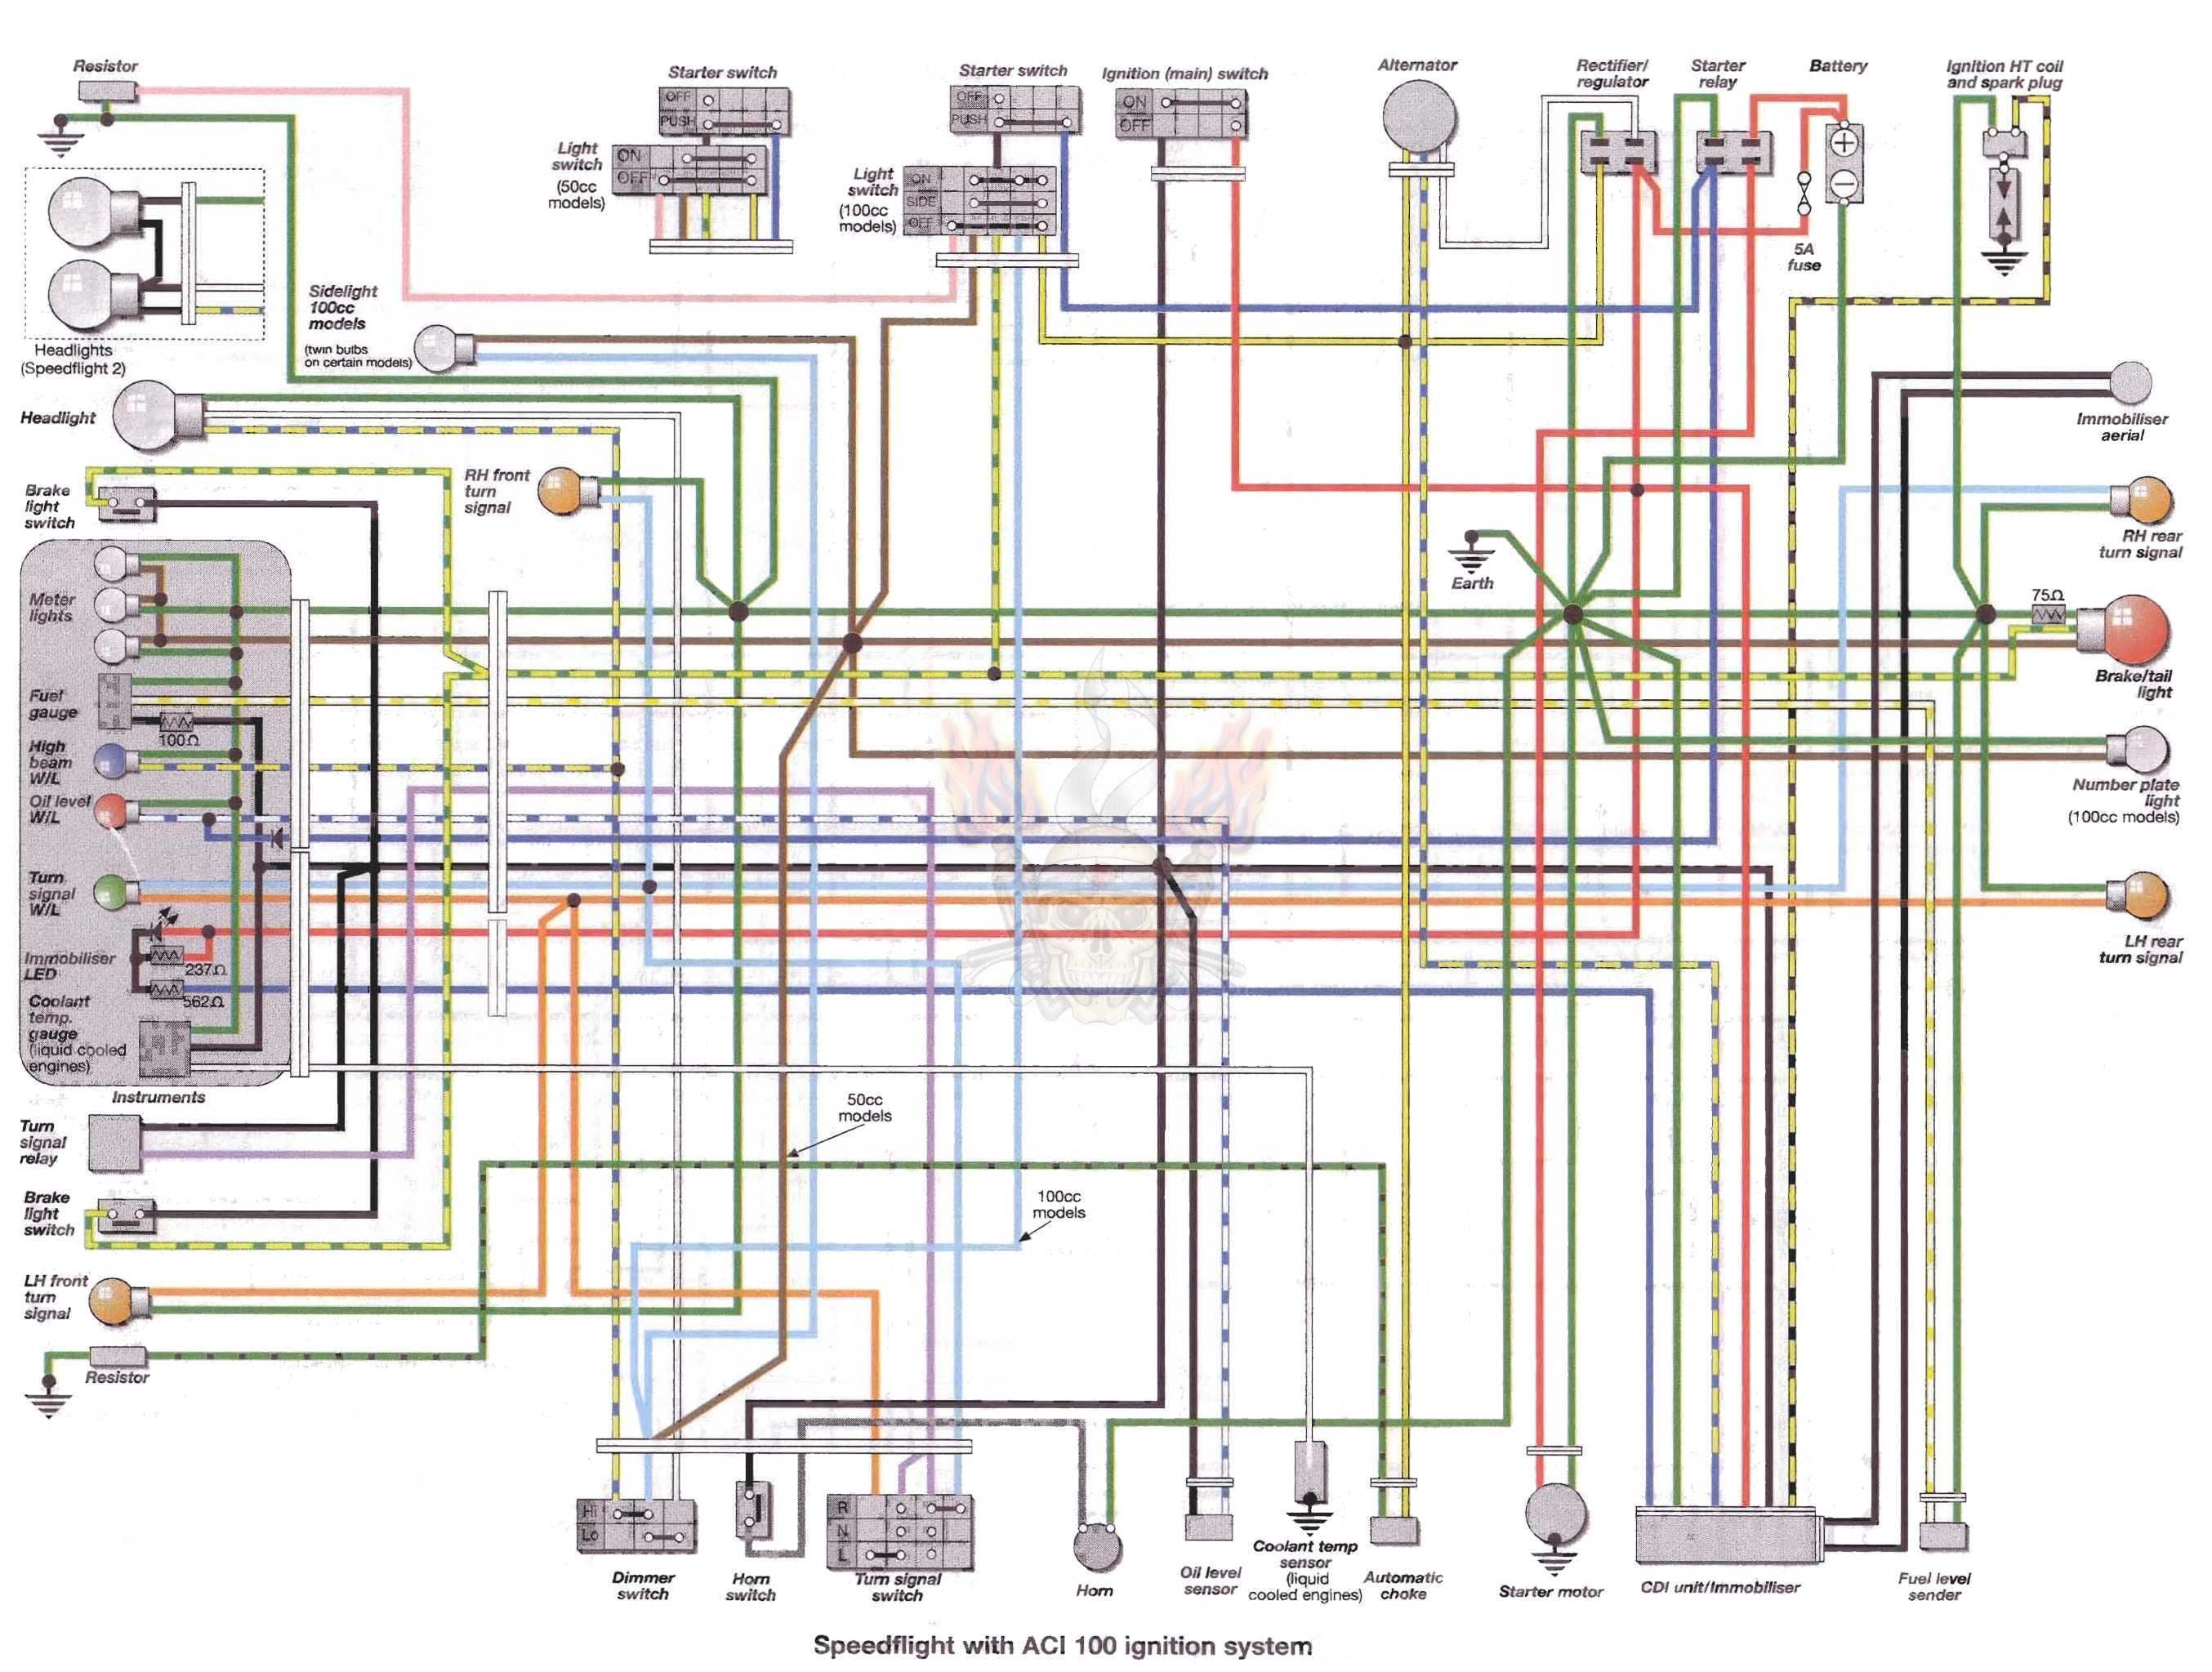 simple wiring diagram for kz1000 wiring diagram specialtieskz1000 wiring  diagram basic best wiring librarypeugeot vivacity wiring